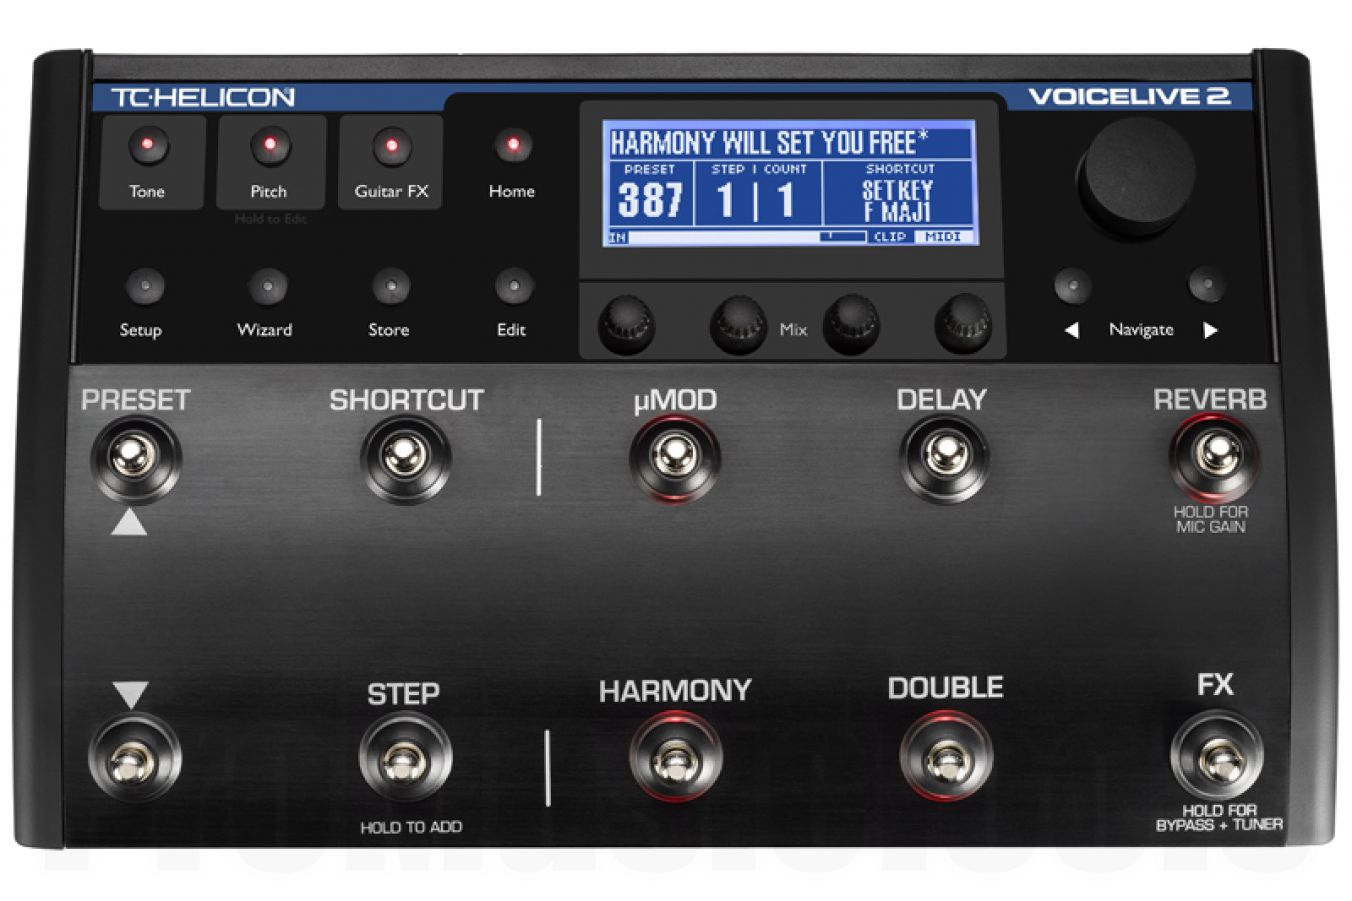 TC Helicon VoiceLive 2 - b-stock (1x opened box)